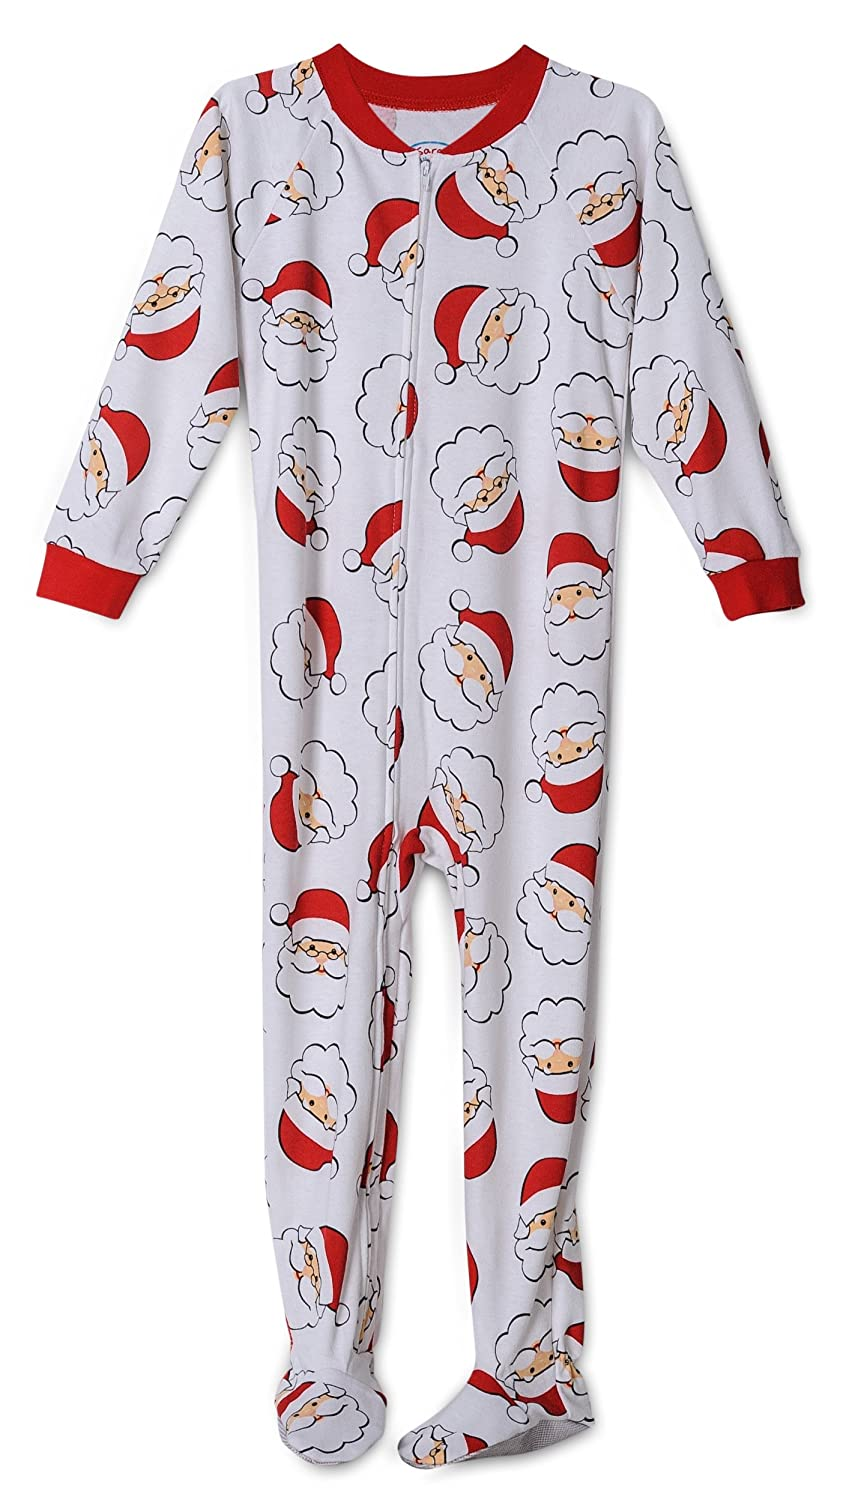 Santa Claus Print Footed Onesie Christmas Pajama Toddlers Size 4T